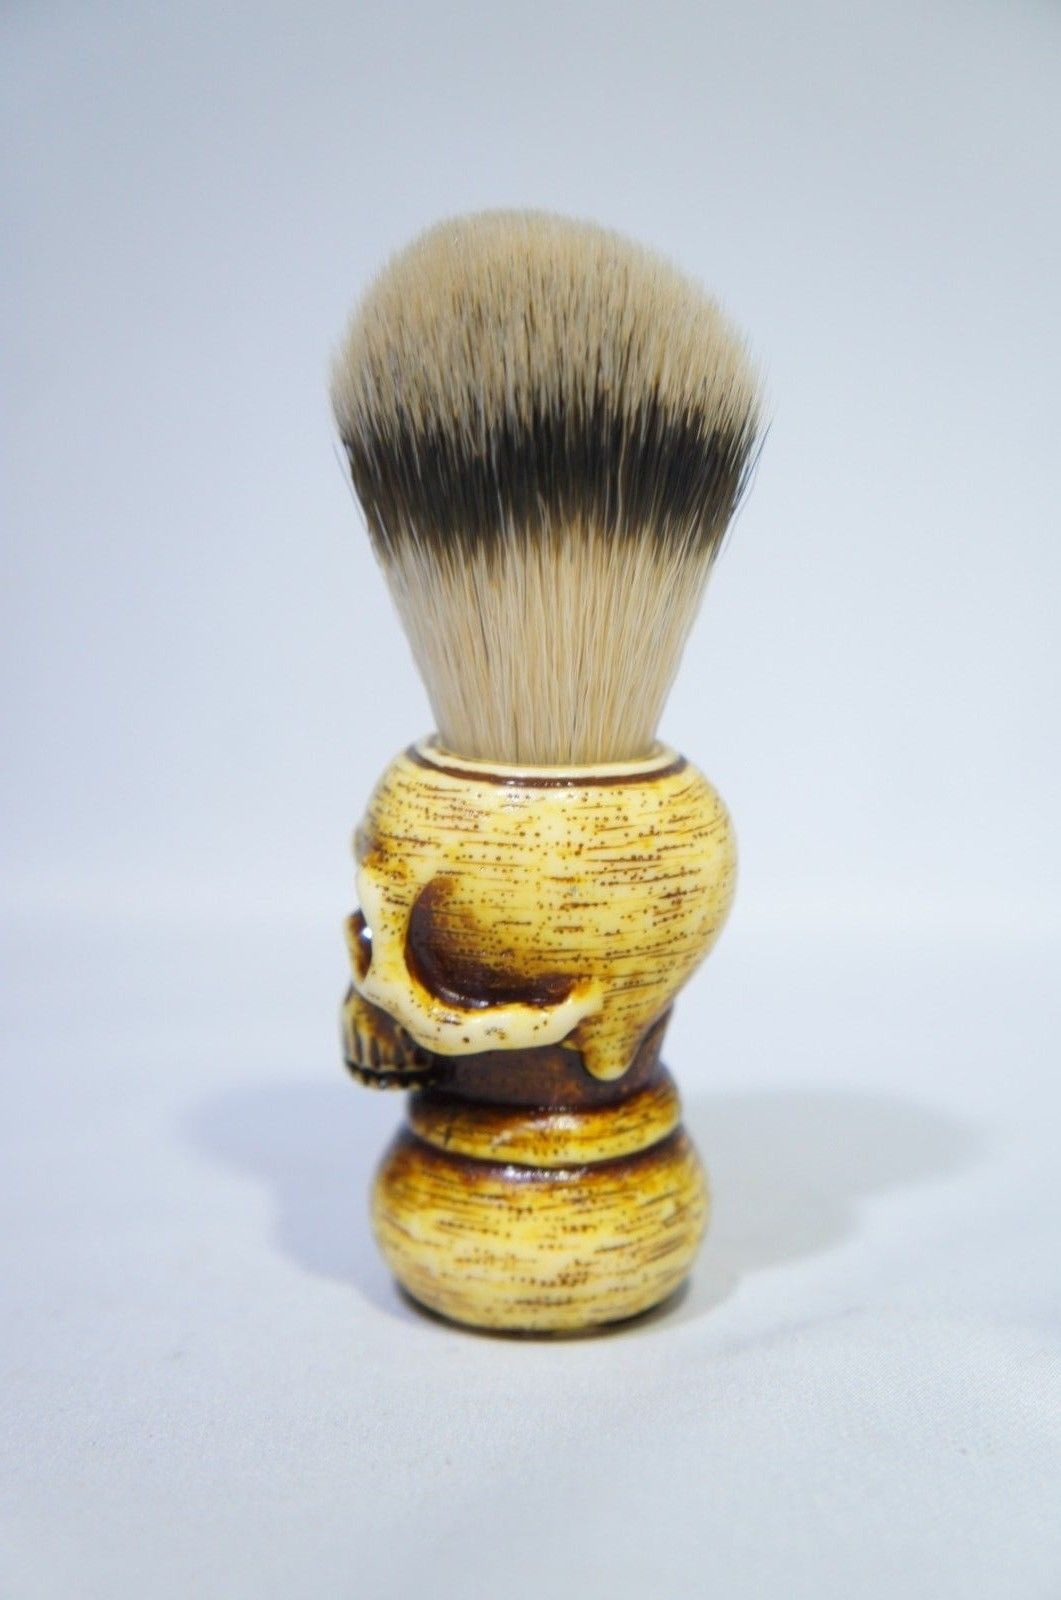 Hand Crafted 100% Natural Badger Shaving Brush with Resin Skull Shaped Han (Like New)